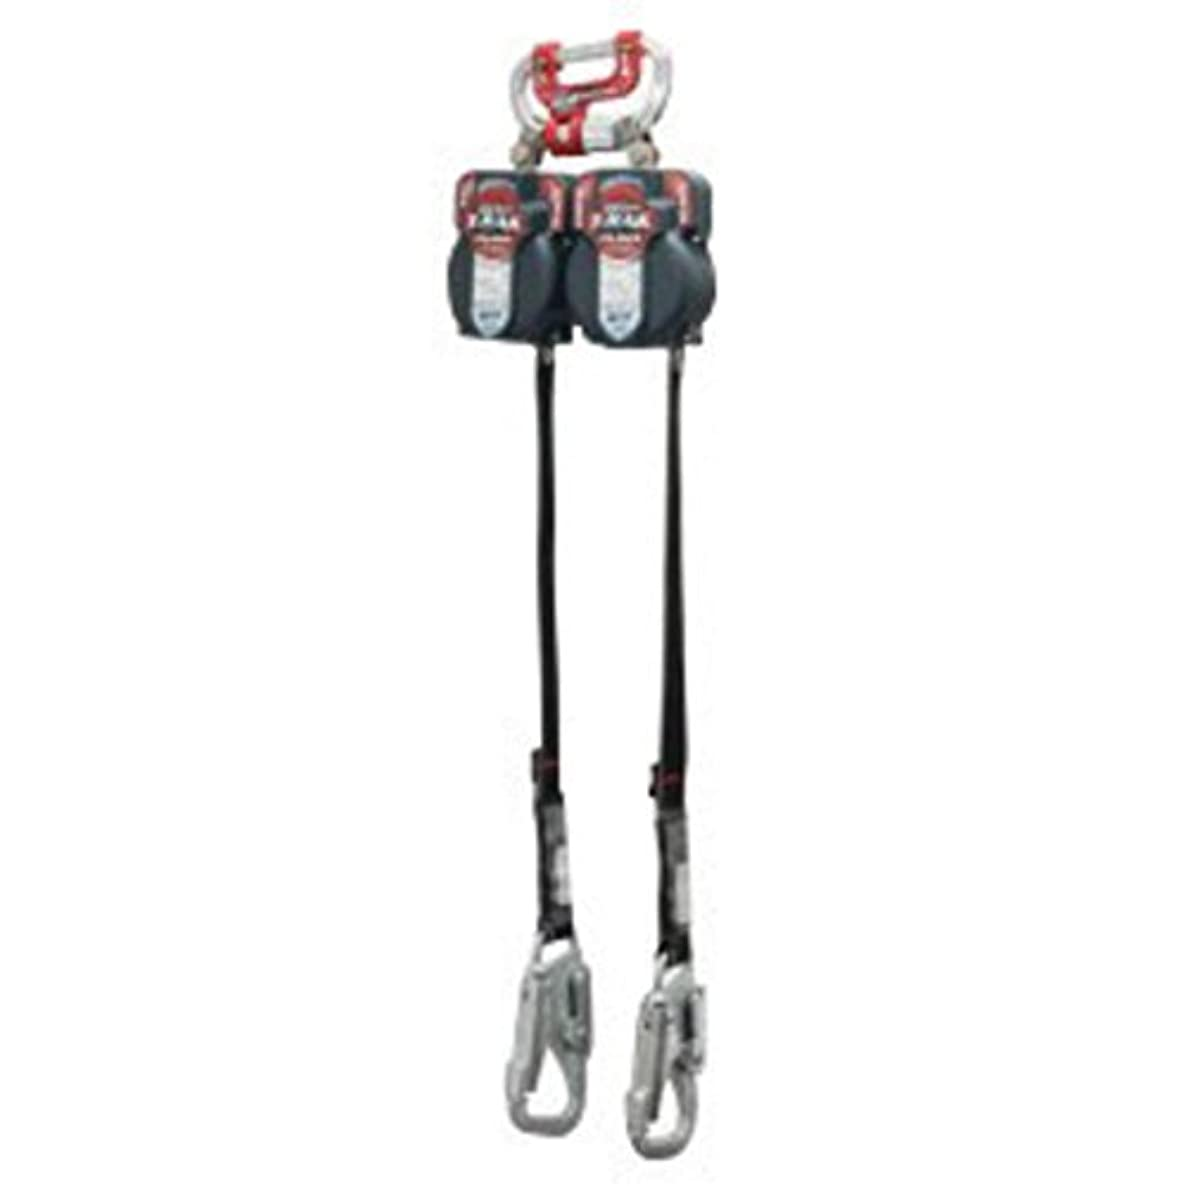 Miller? 7 1/2' Twin Turbo T-Bak Fall Protection System (Includes Twin Turbo G2 Connector, (2) MFLT-1/7.5FT Turbo T-Bak Personal Fall Limiters, Strength Snap Hook And Zinc Plated Steel 5K? Gate Hook)